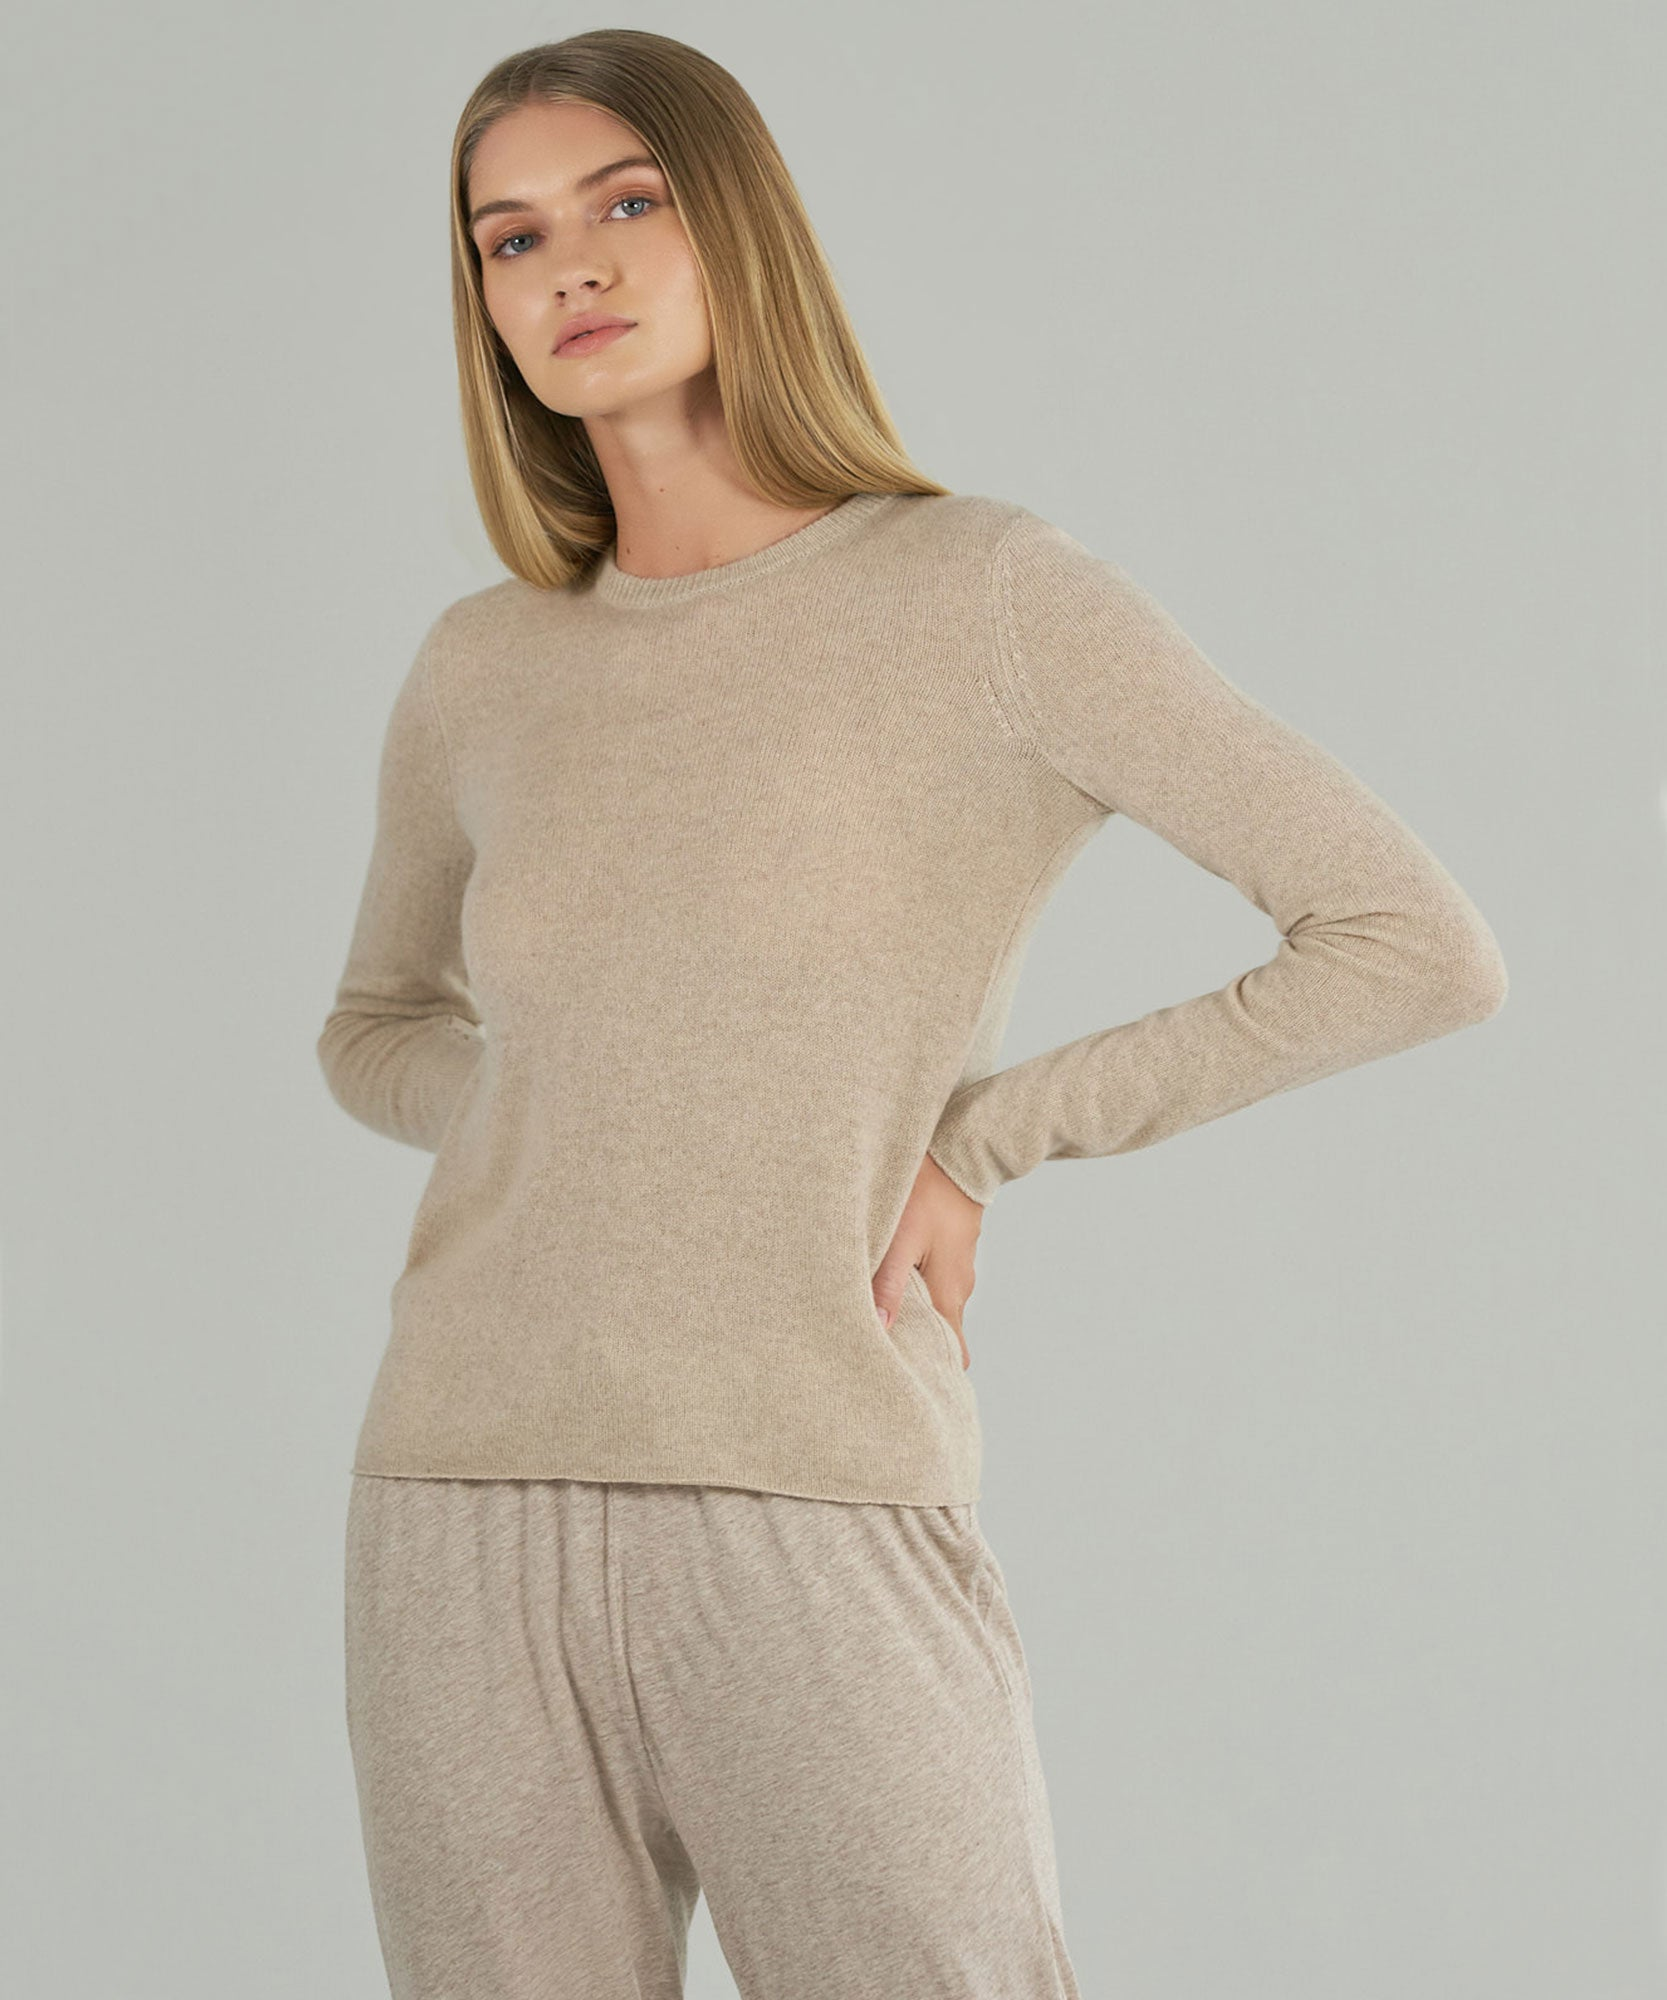 Oat Cashmere Crew Neck Sweater - Women's Sweater by ATM Anthony Thomas Melillo